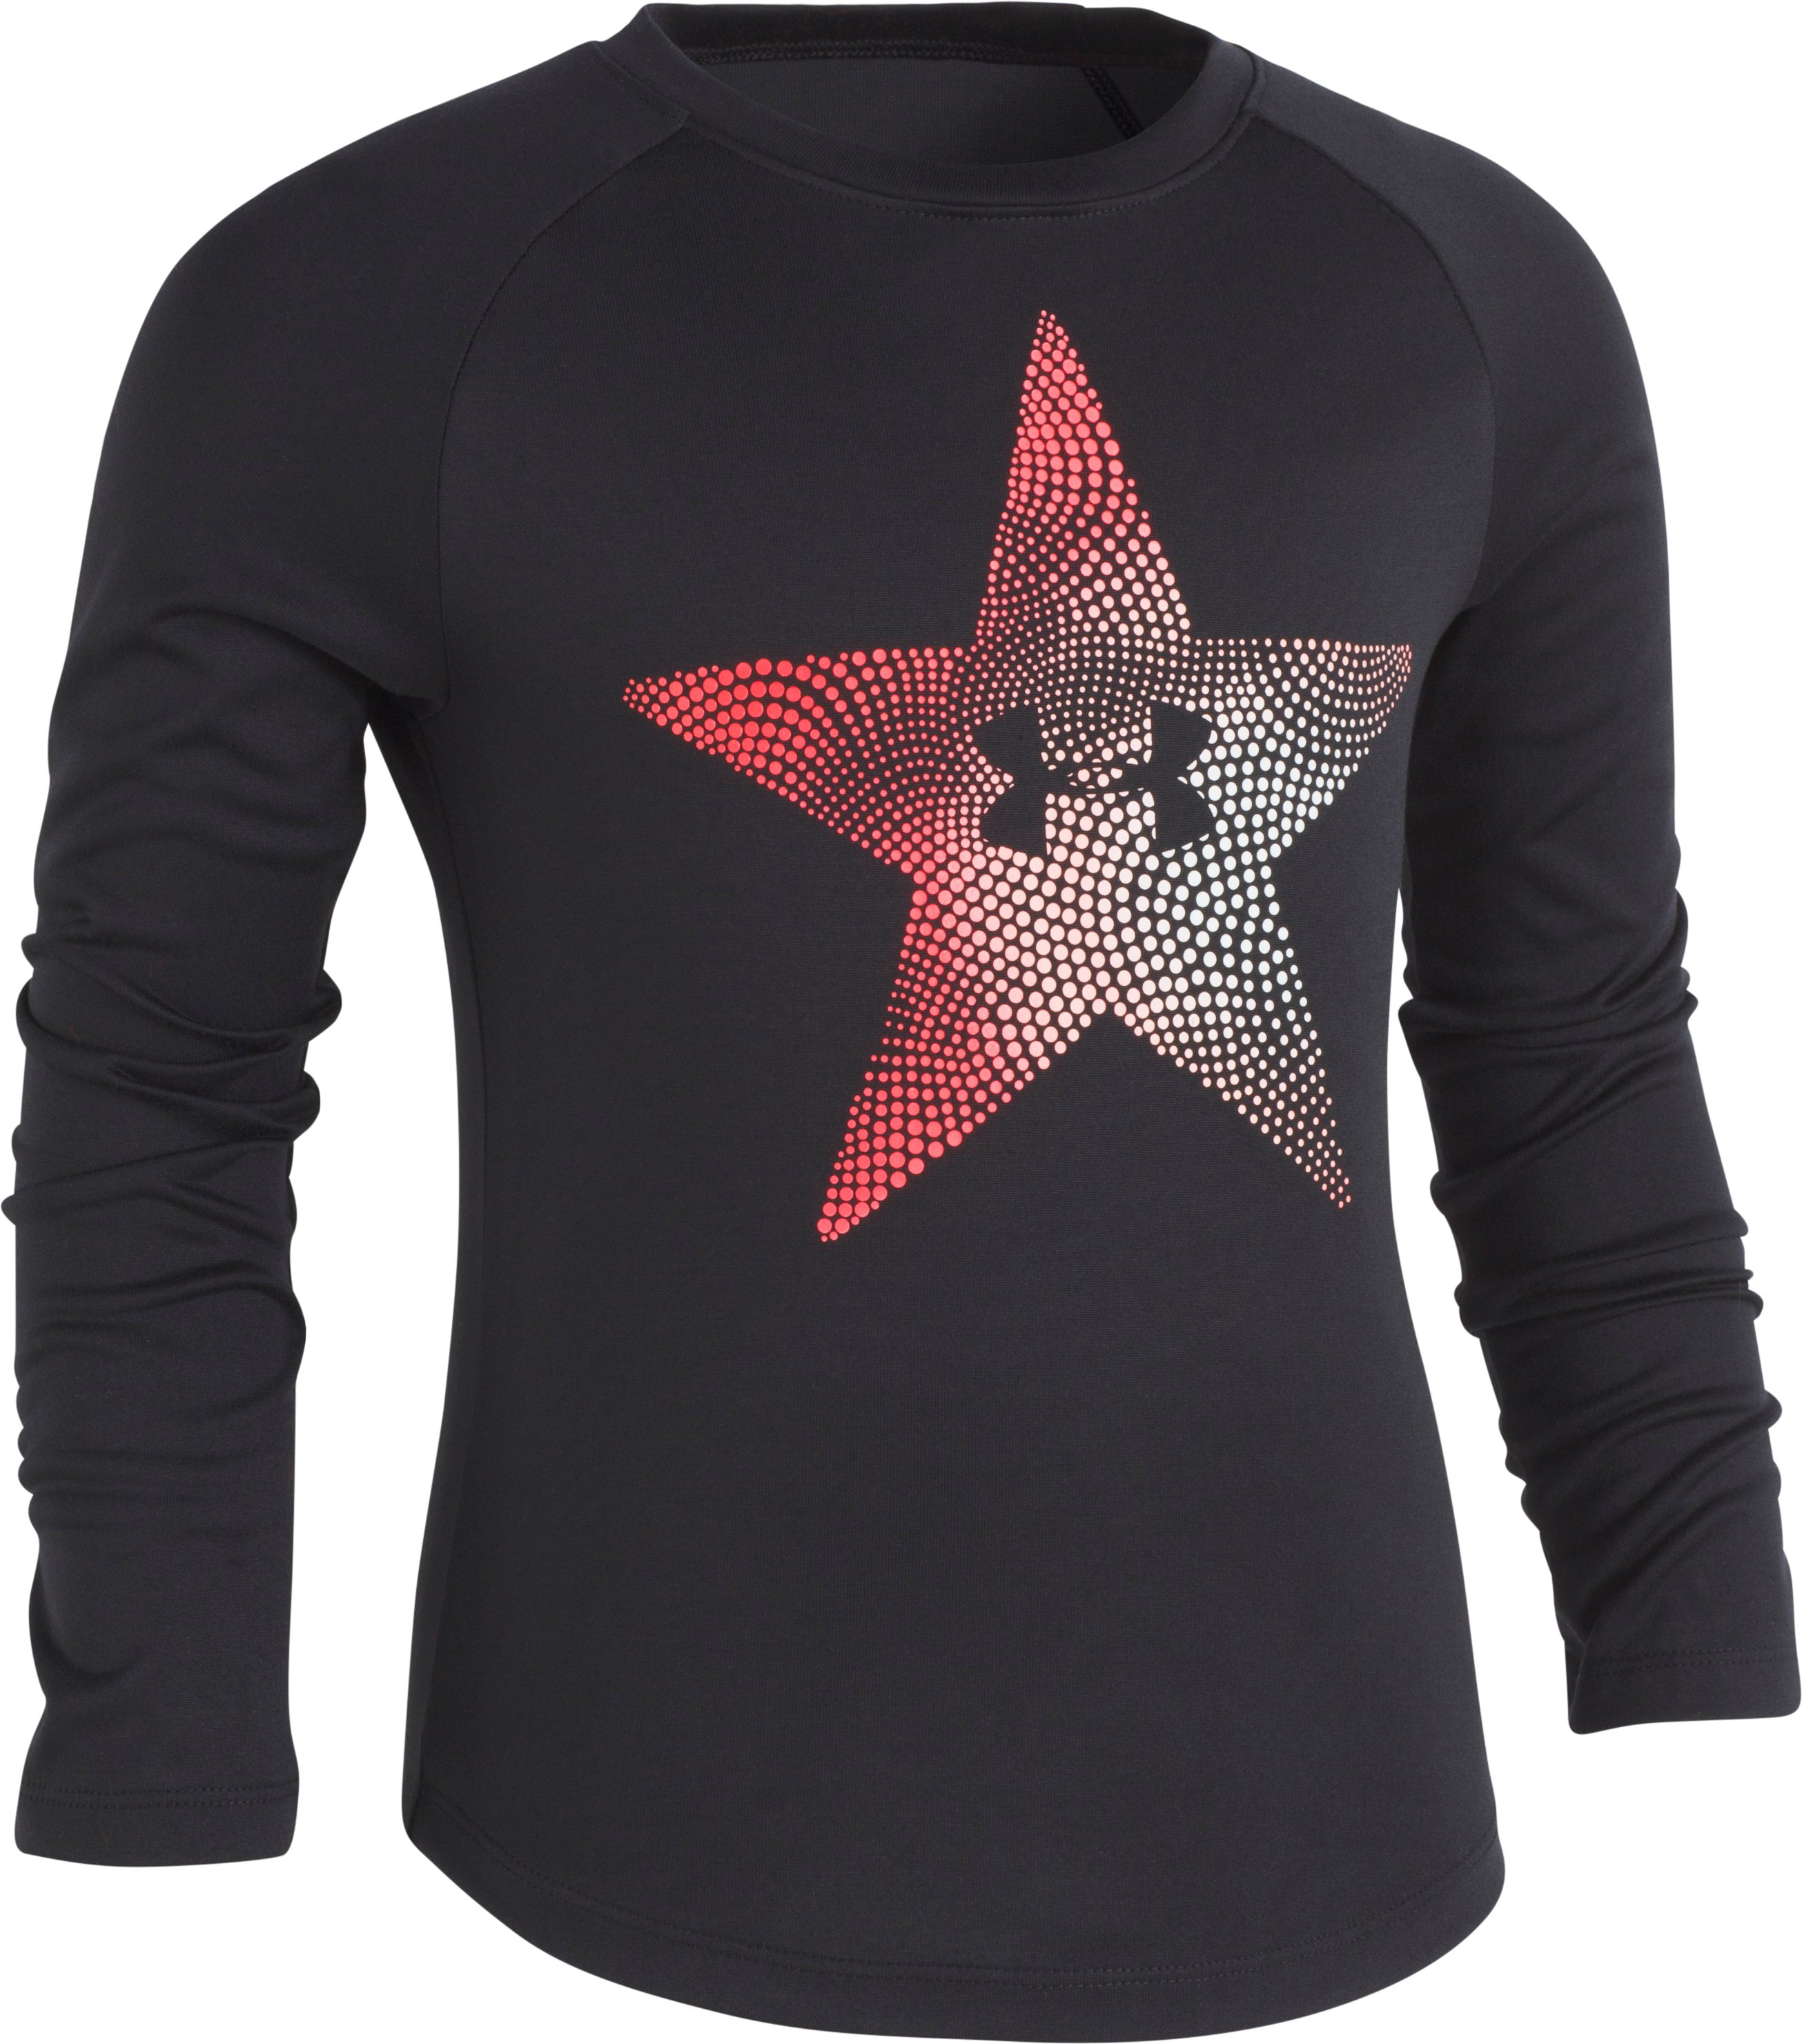 Girls' Pre-School UA Star Oracle Long Sleeve T-Shirt, Black